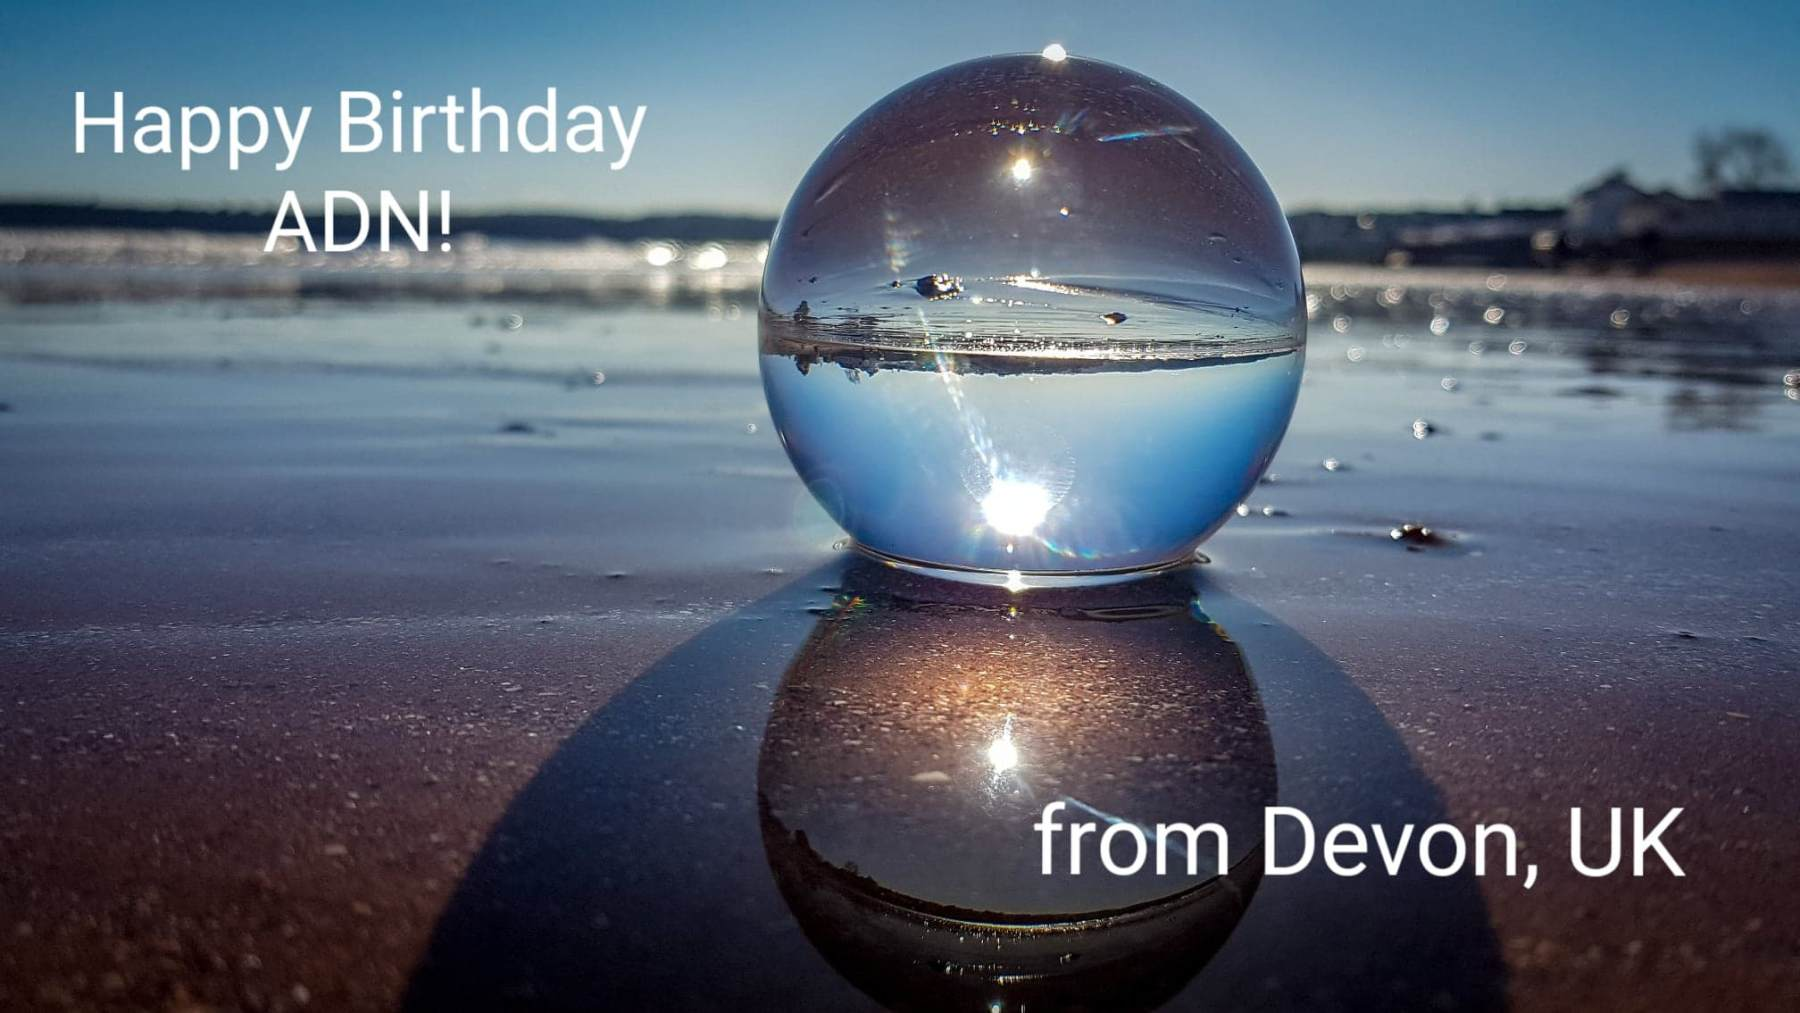 Birthday Wishes from Devon, UK